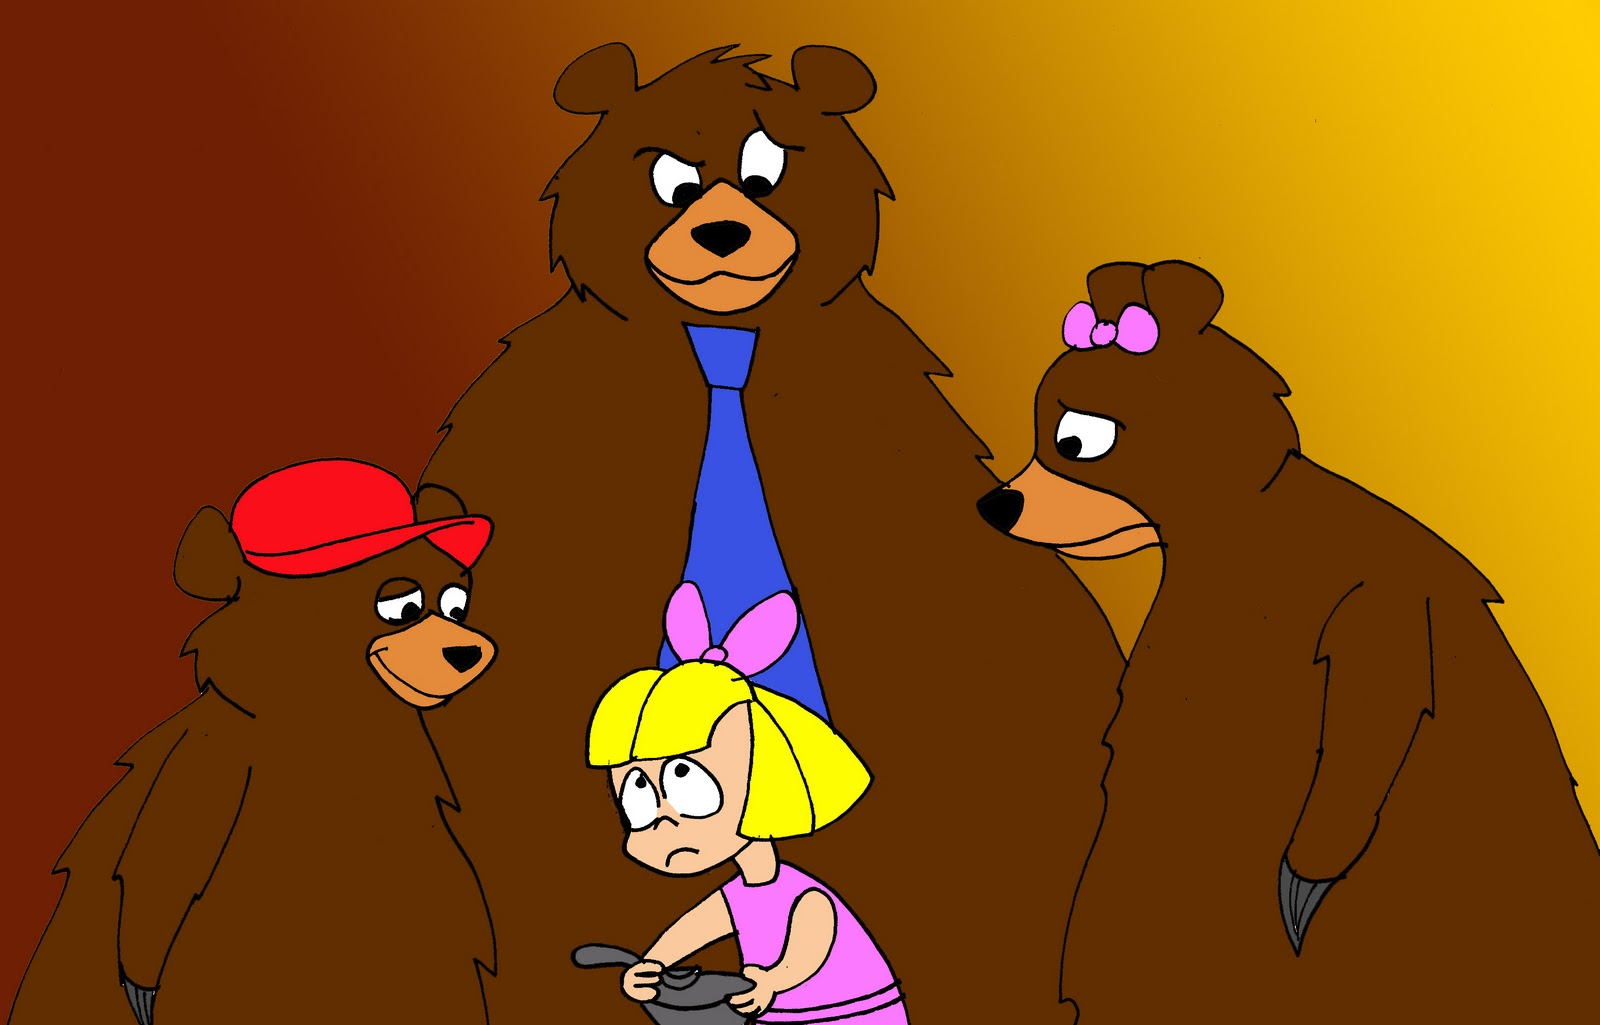 Goldilocks And The Three Bears Story Goldilocks and the three bears